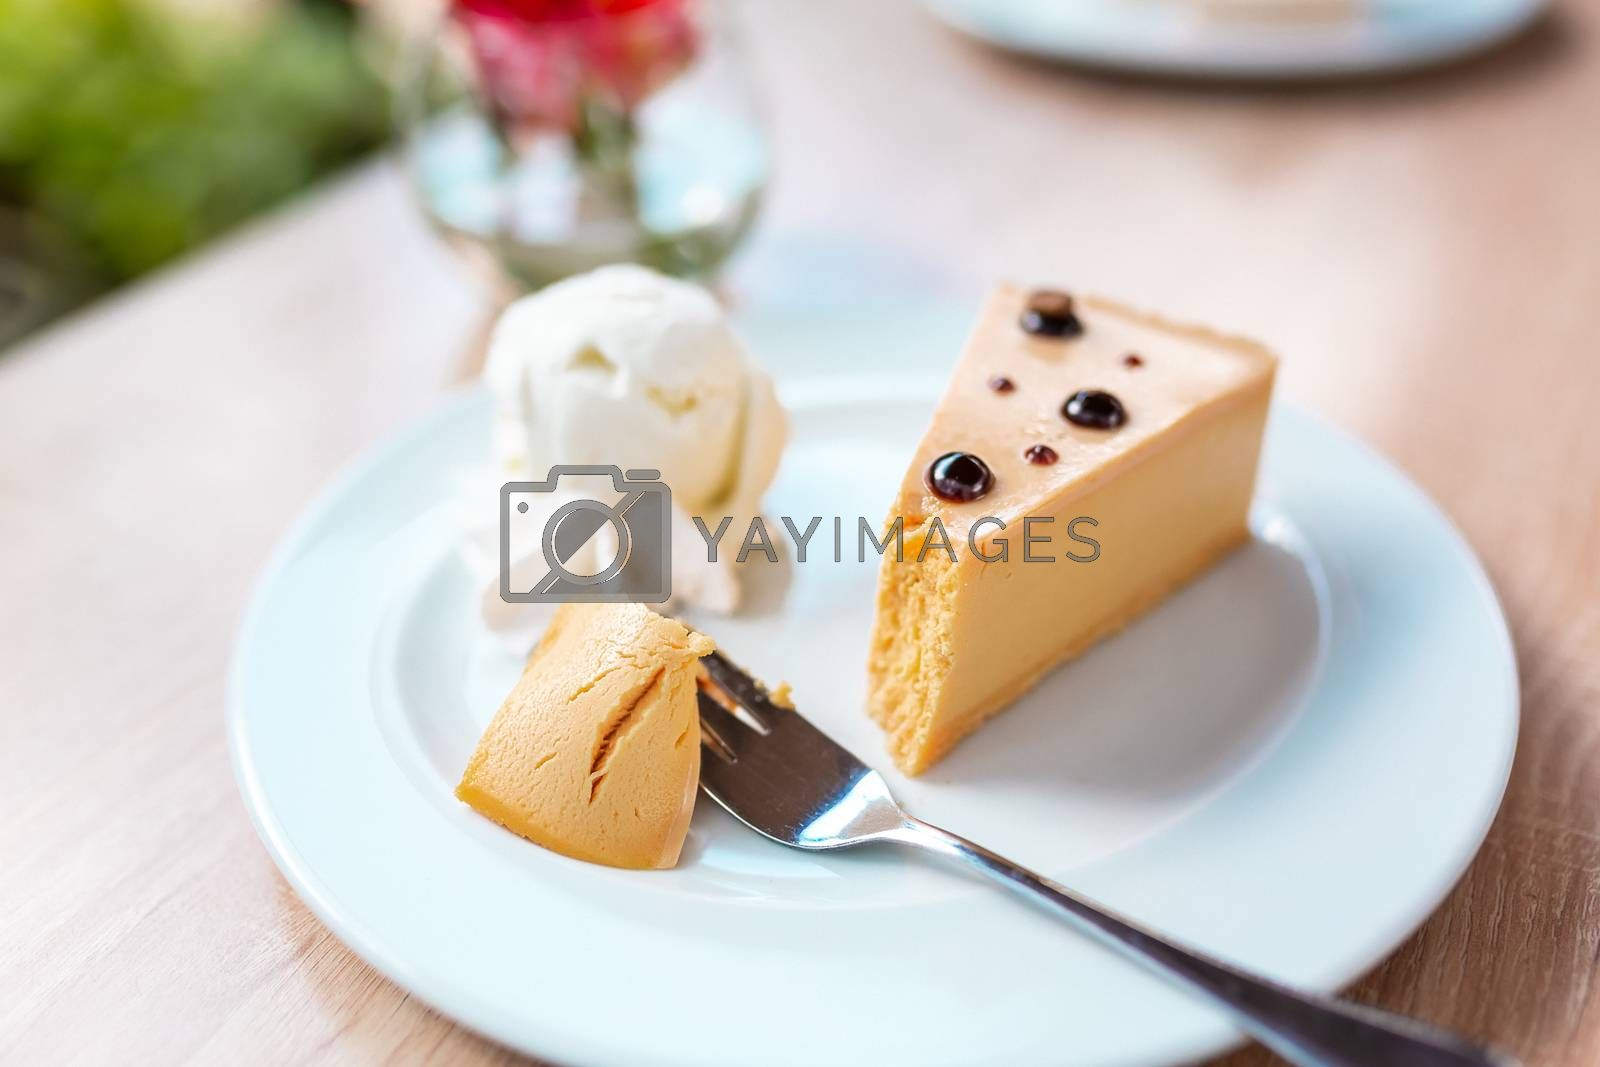 A piece of delicious caramel cheesecake served with ice cream and flowers on the table